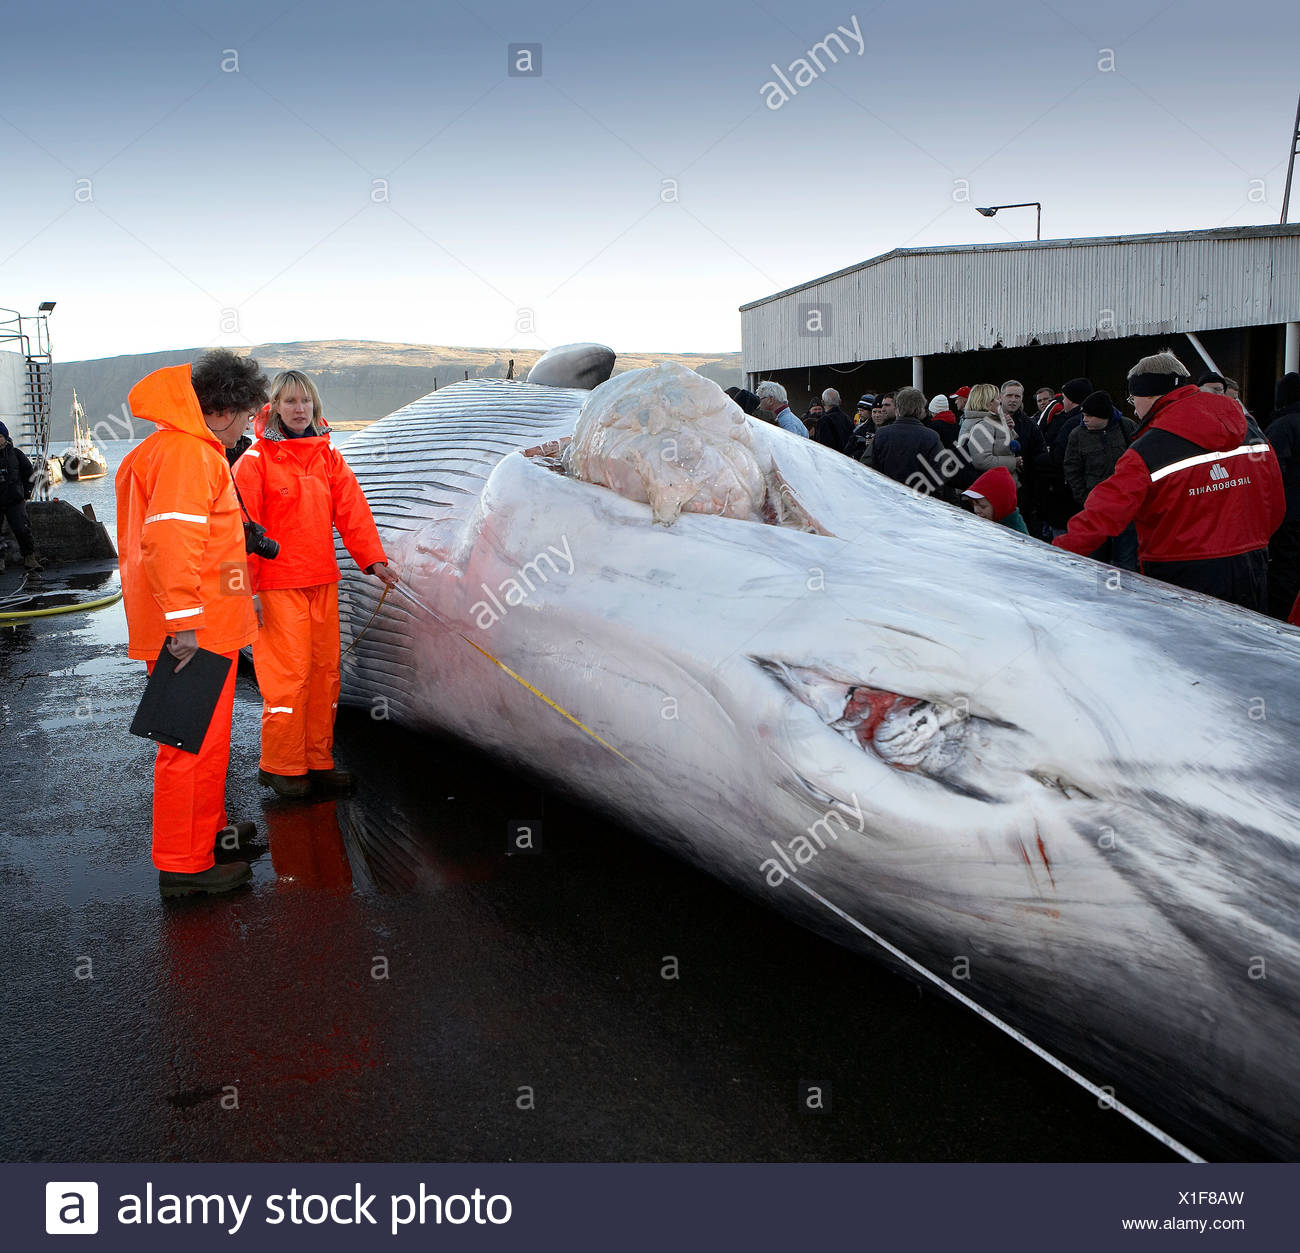 Researchers with Fin Whale showing Genitalia, Hvalfjordur, Iceland - Stock Image